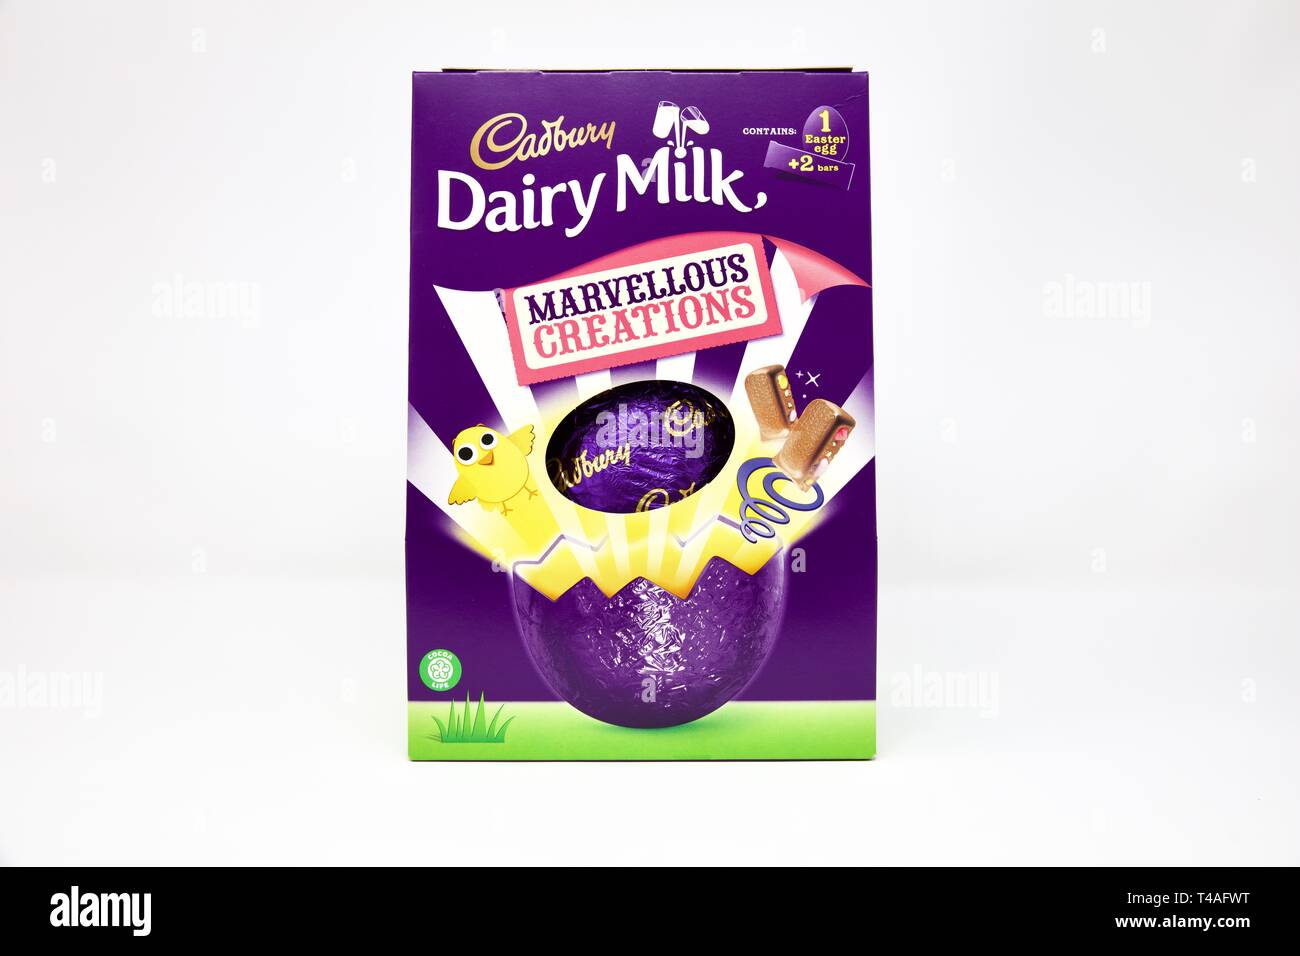 Cadbury Dairy Milk Marvellous Creations Chocolate Easter Egg on a white background - Stock Image